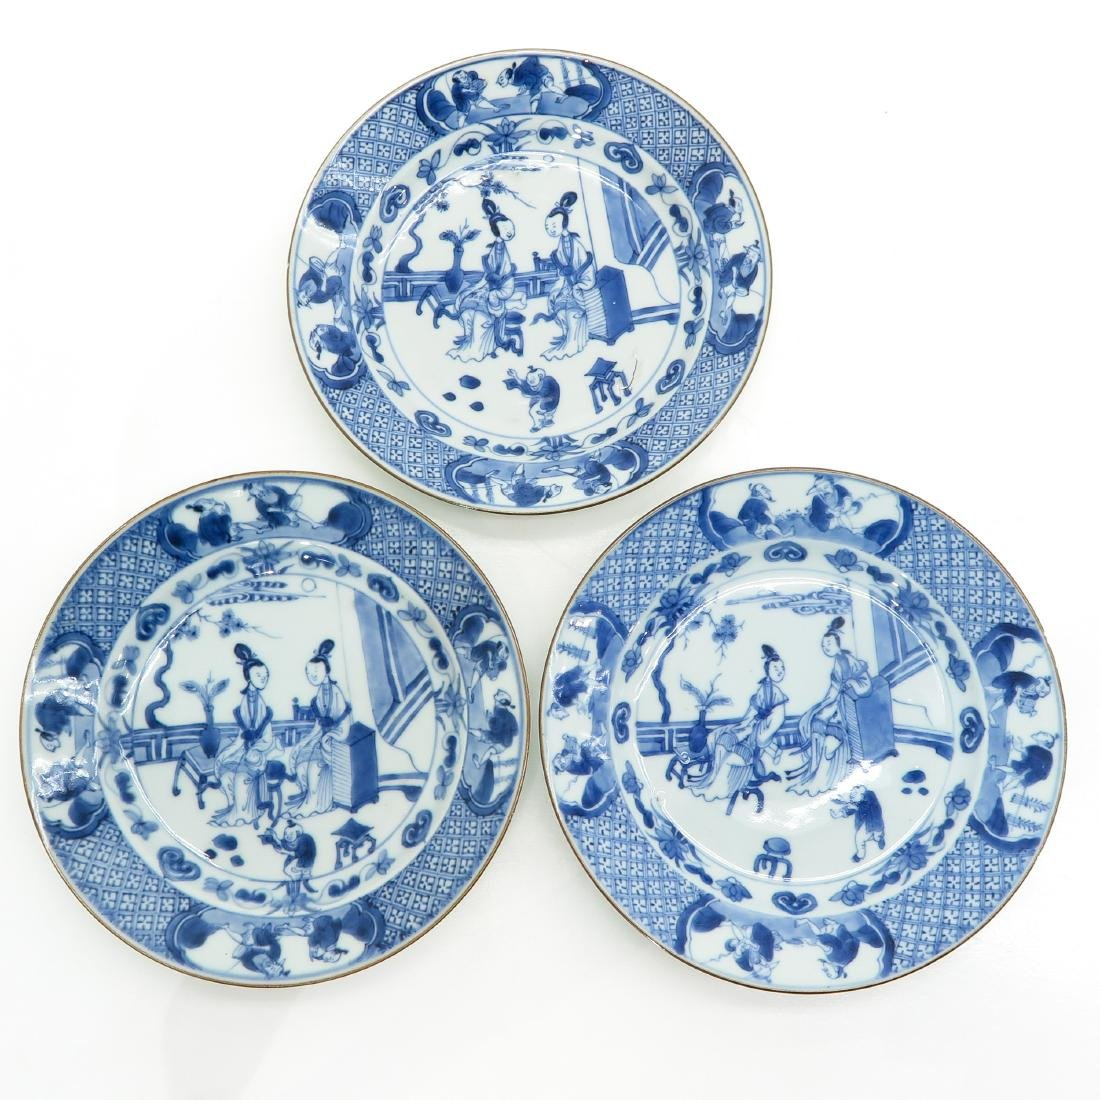 A Series of Three Blue and White Decor Plates